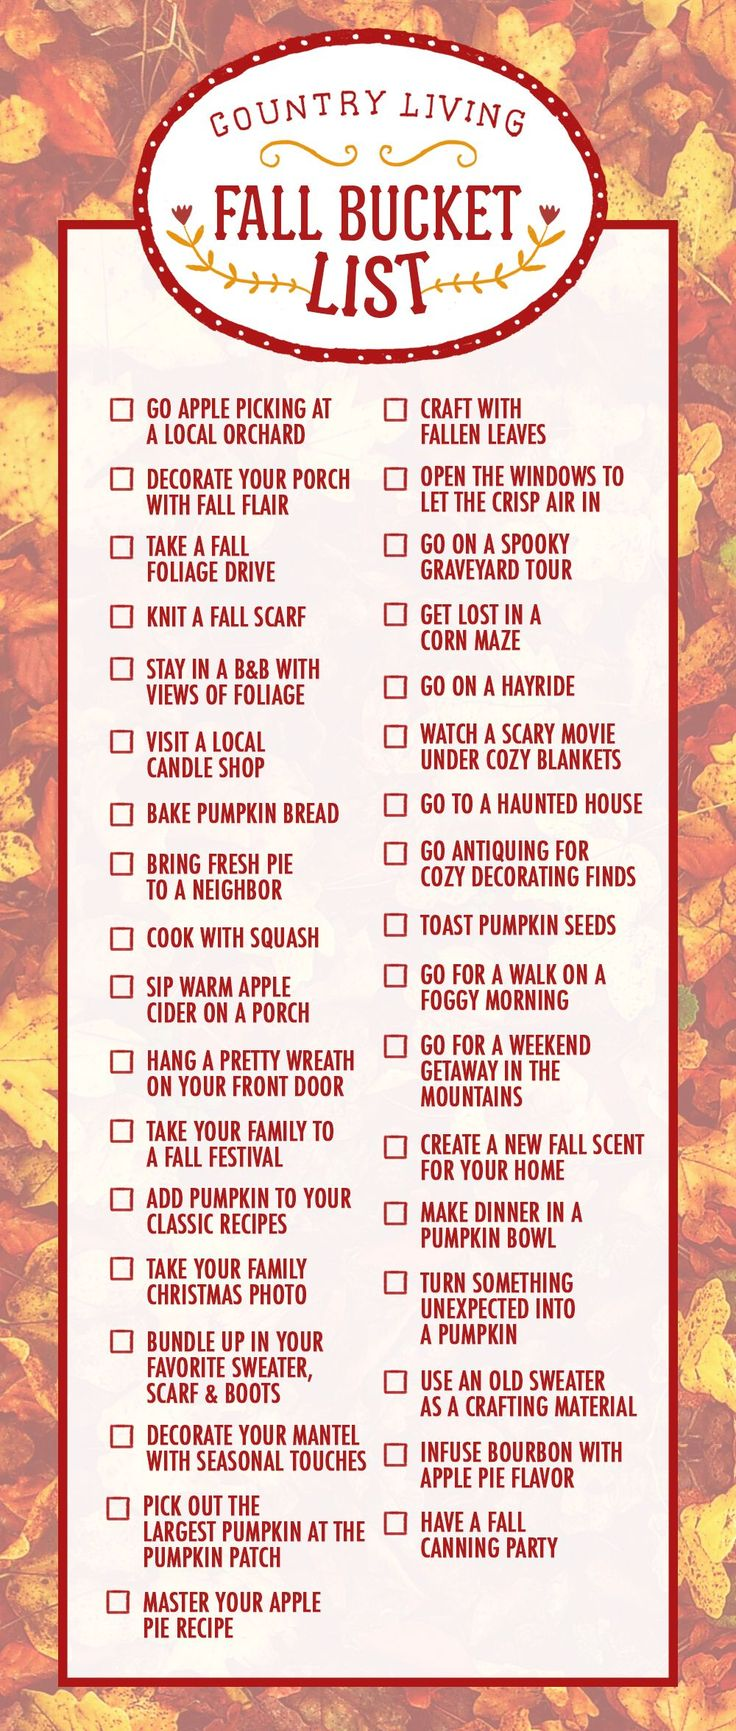 Consider this your ultimate fall bucket list! Use our checklist of essential autumn activities to ensure you have the best season yet. We've rounded up our favorite seasonal activities from baking apple pie to decorating your porch and mantel for fall. #fall #bucketlist